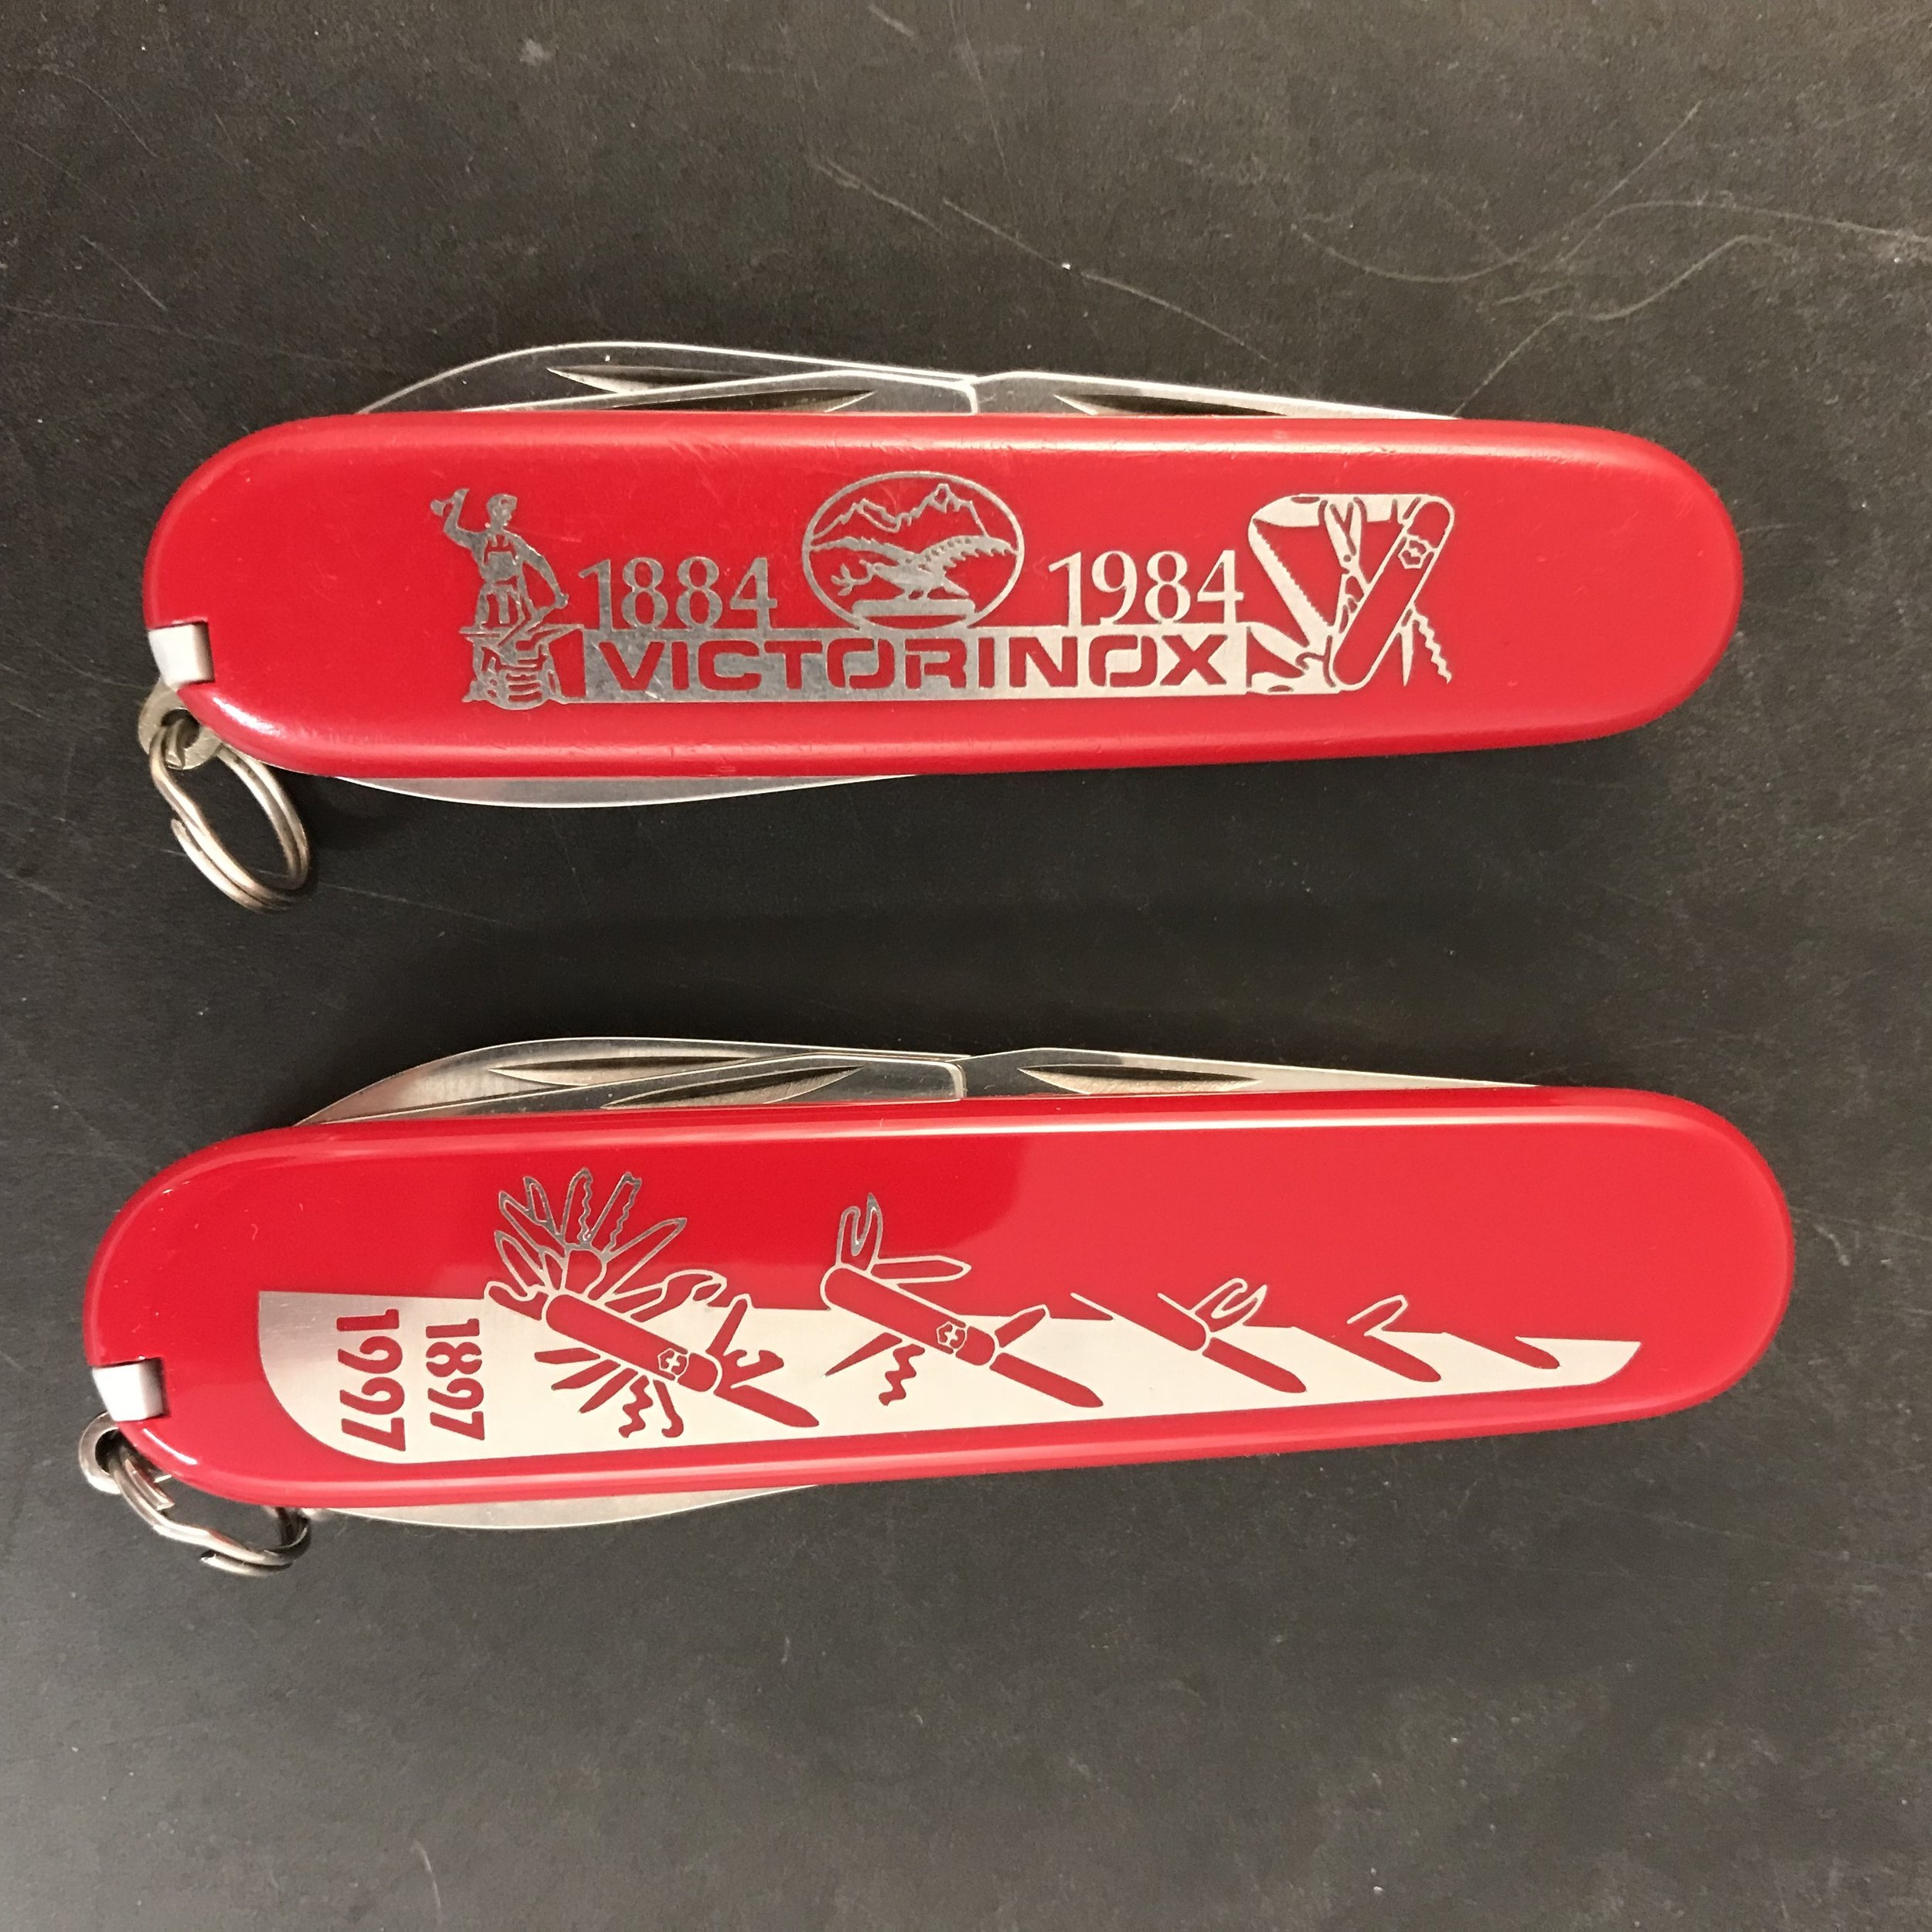 This 84 mm Tinker (top) is celebrating the centennial of the Victorinox company.  The Spartan (bottom) observes the 100th anniversary of the Officer's Knife.